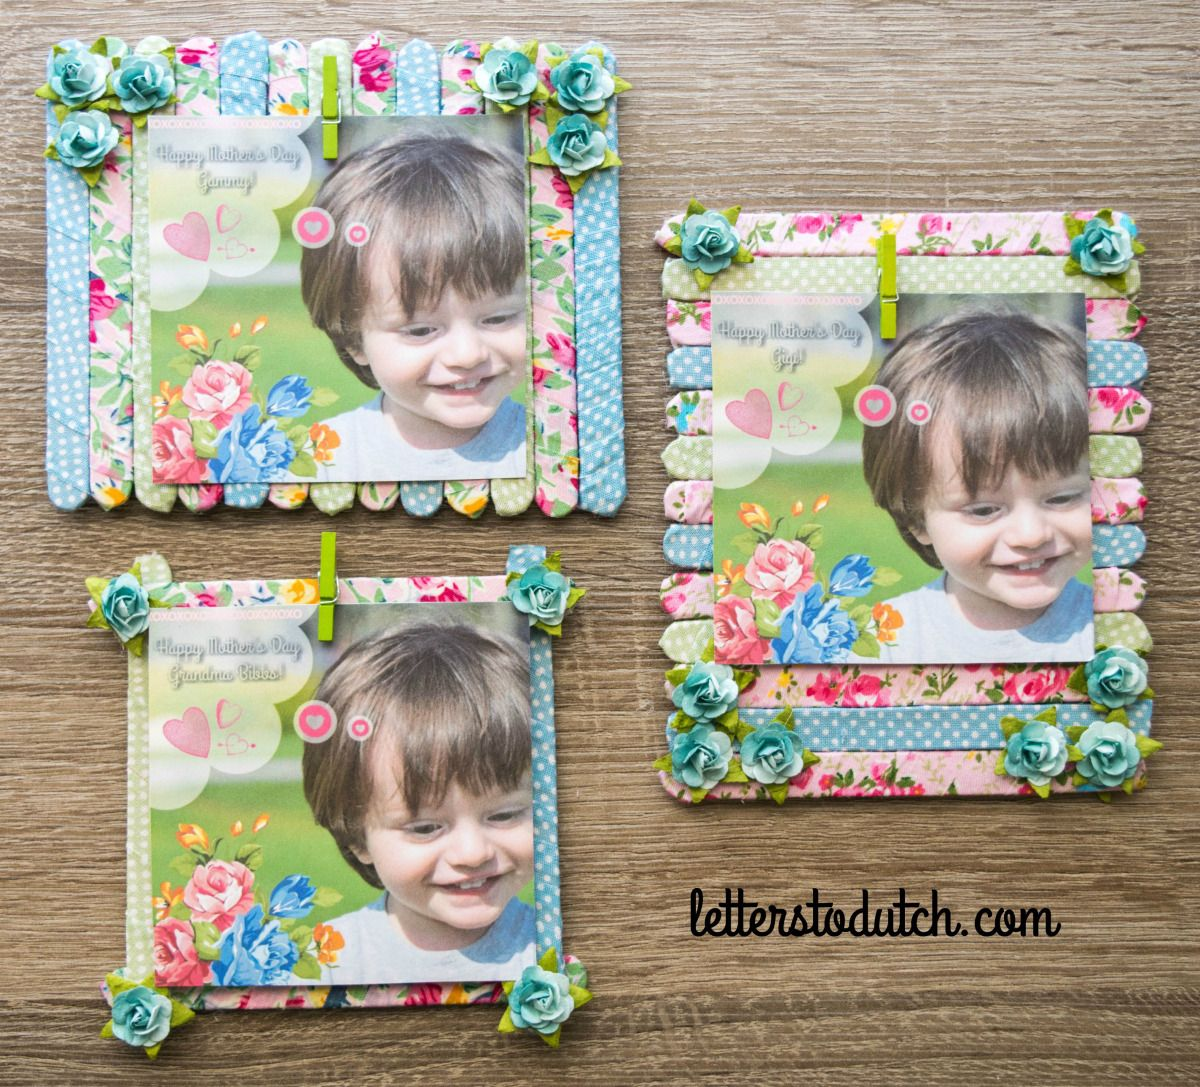 Diy Popsicle Stick Picture Frames Popsicle Stick Picture Frame Diy Popsicle Popsicle Crafts